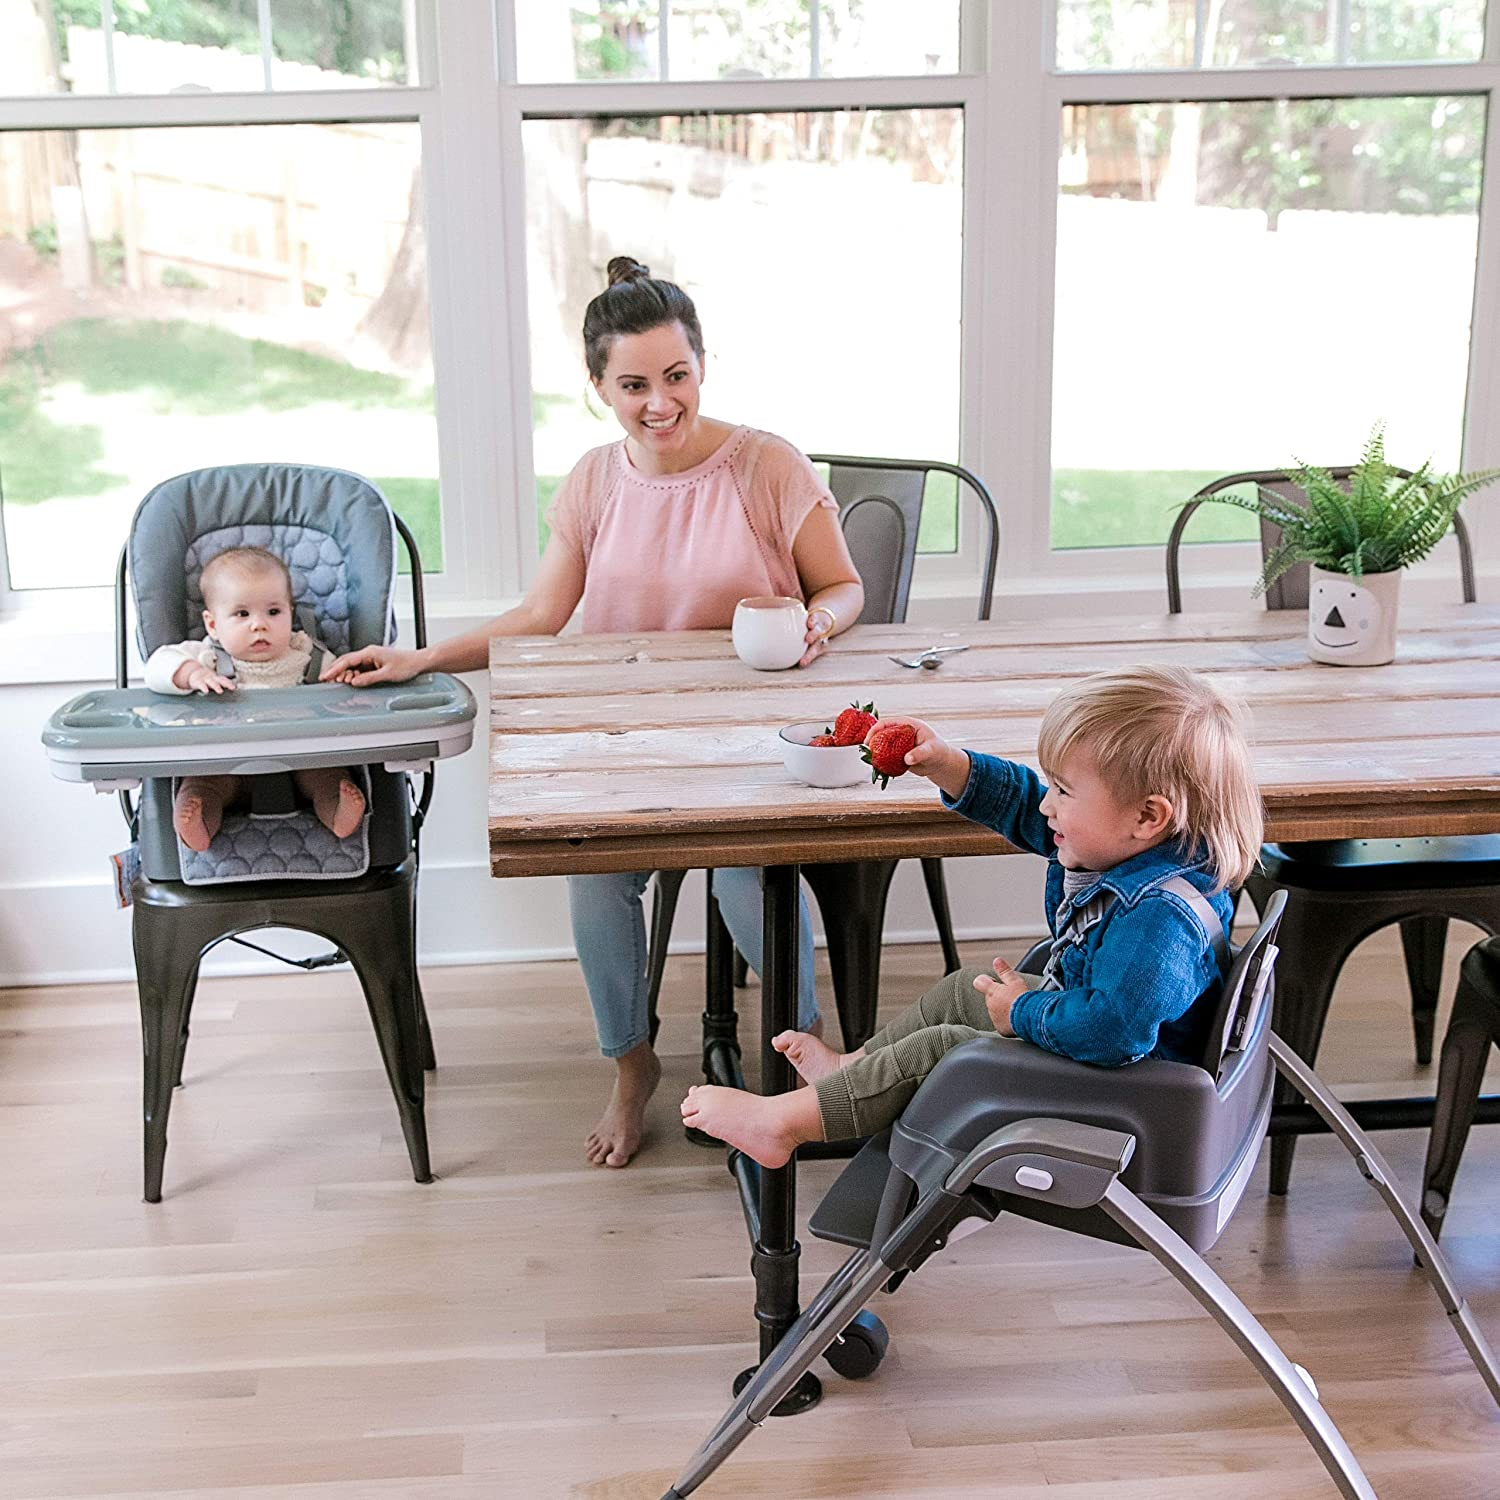 High Chair Connolly Toddler Chair and Booster Ingenuity SmartServe 4-in-1 High Chair with Swing Out Tray